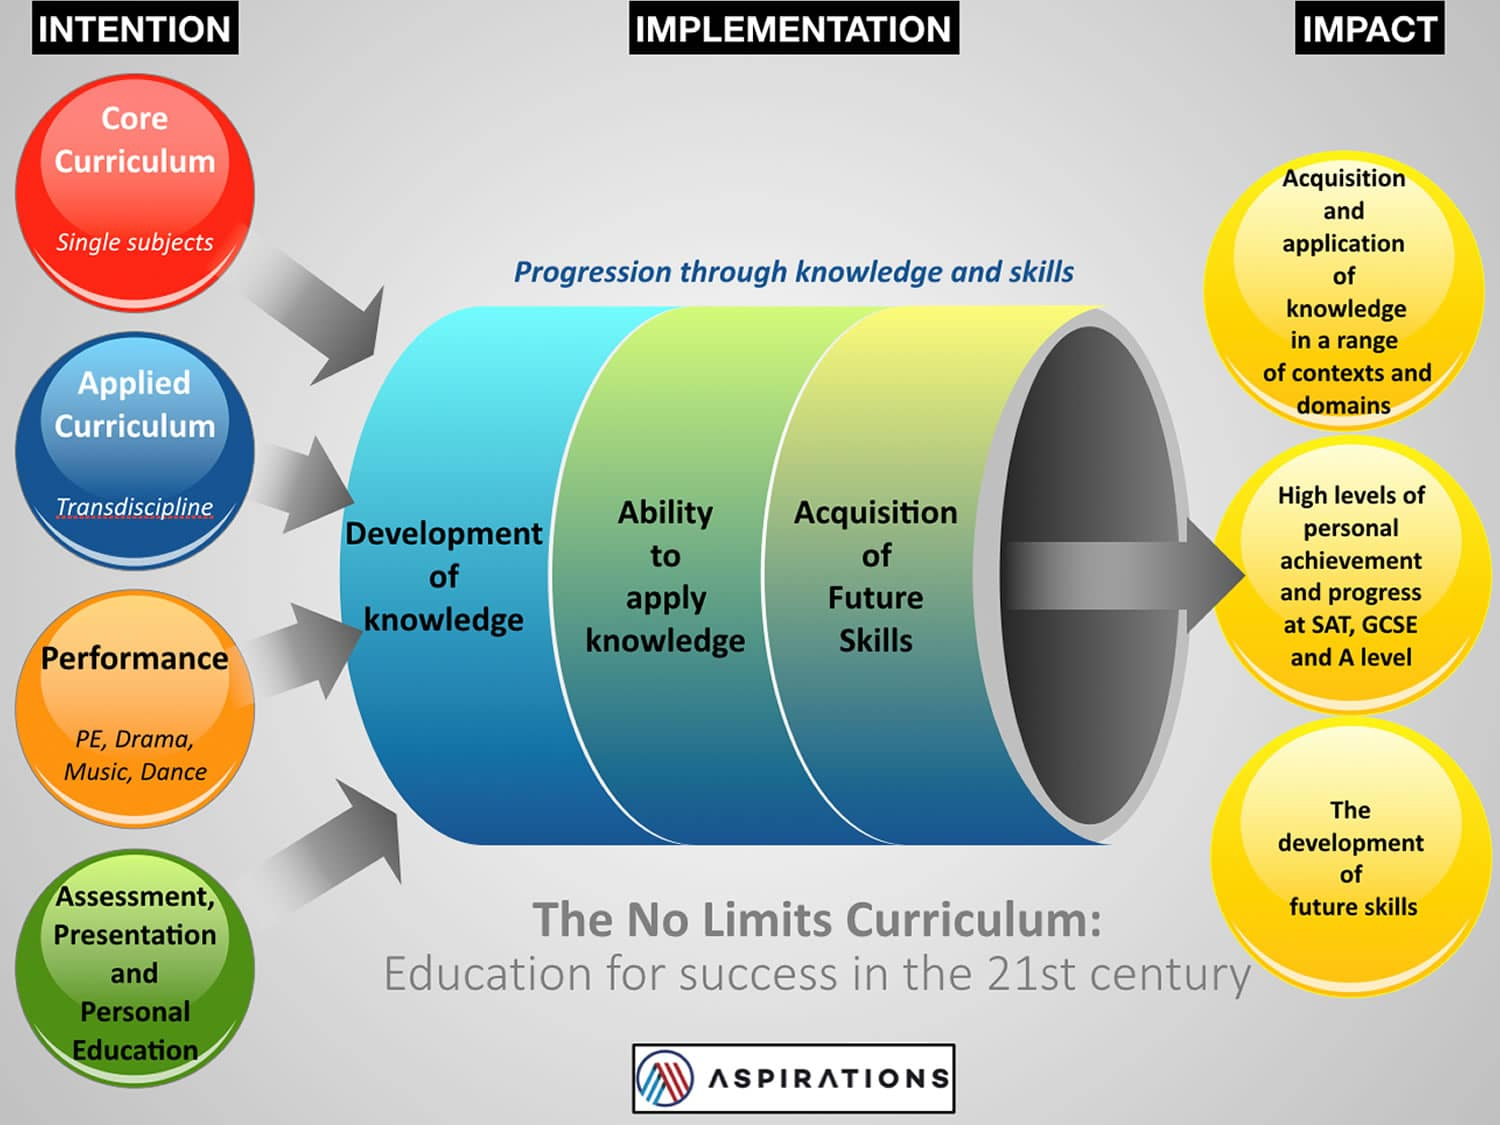 The No Limits Curriculum